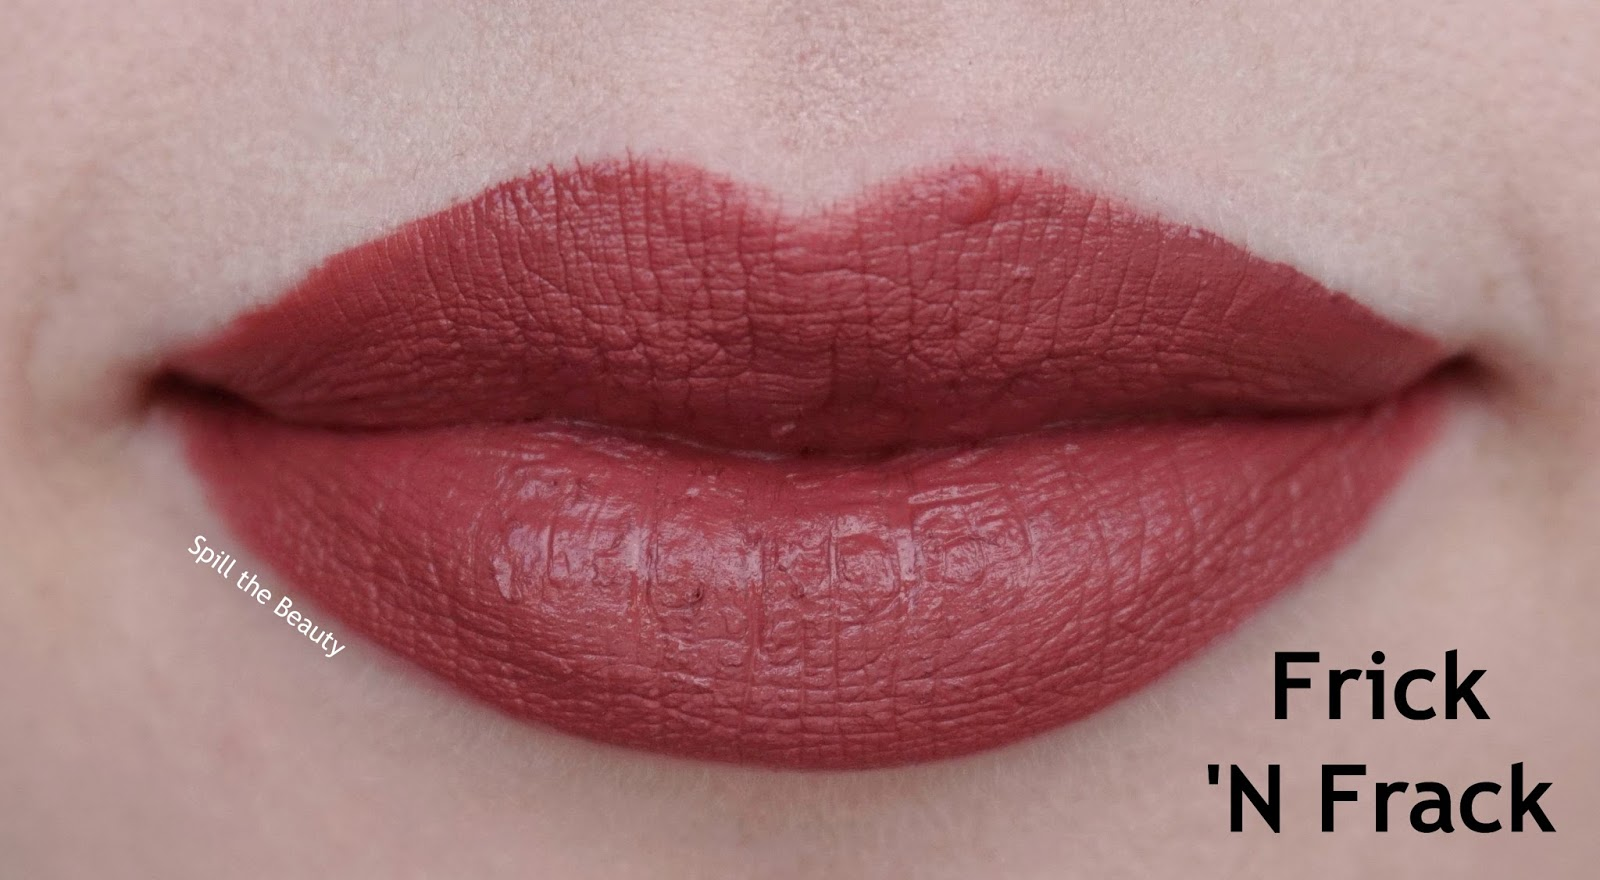 colourpop ultra satin lips faves swatches 2 frick n frack -lips